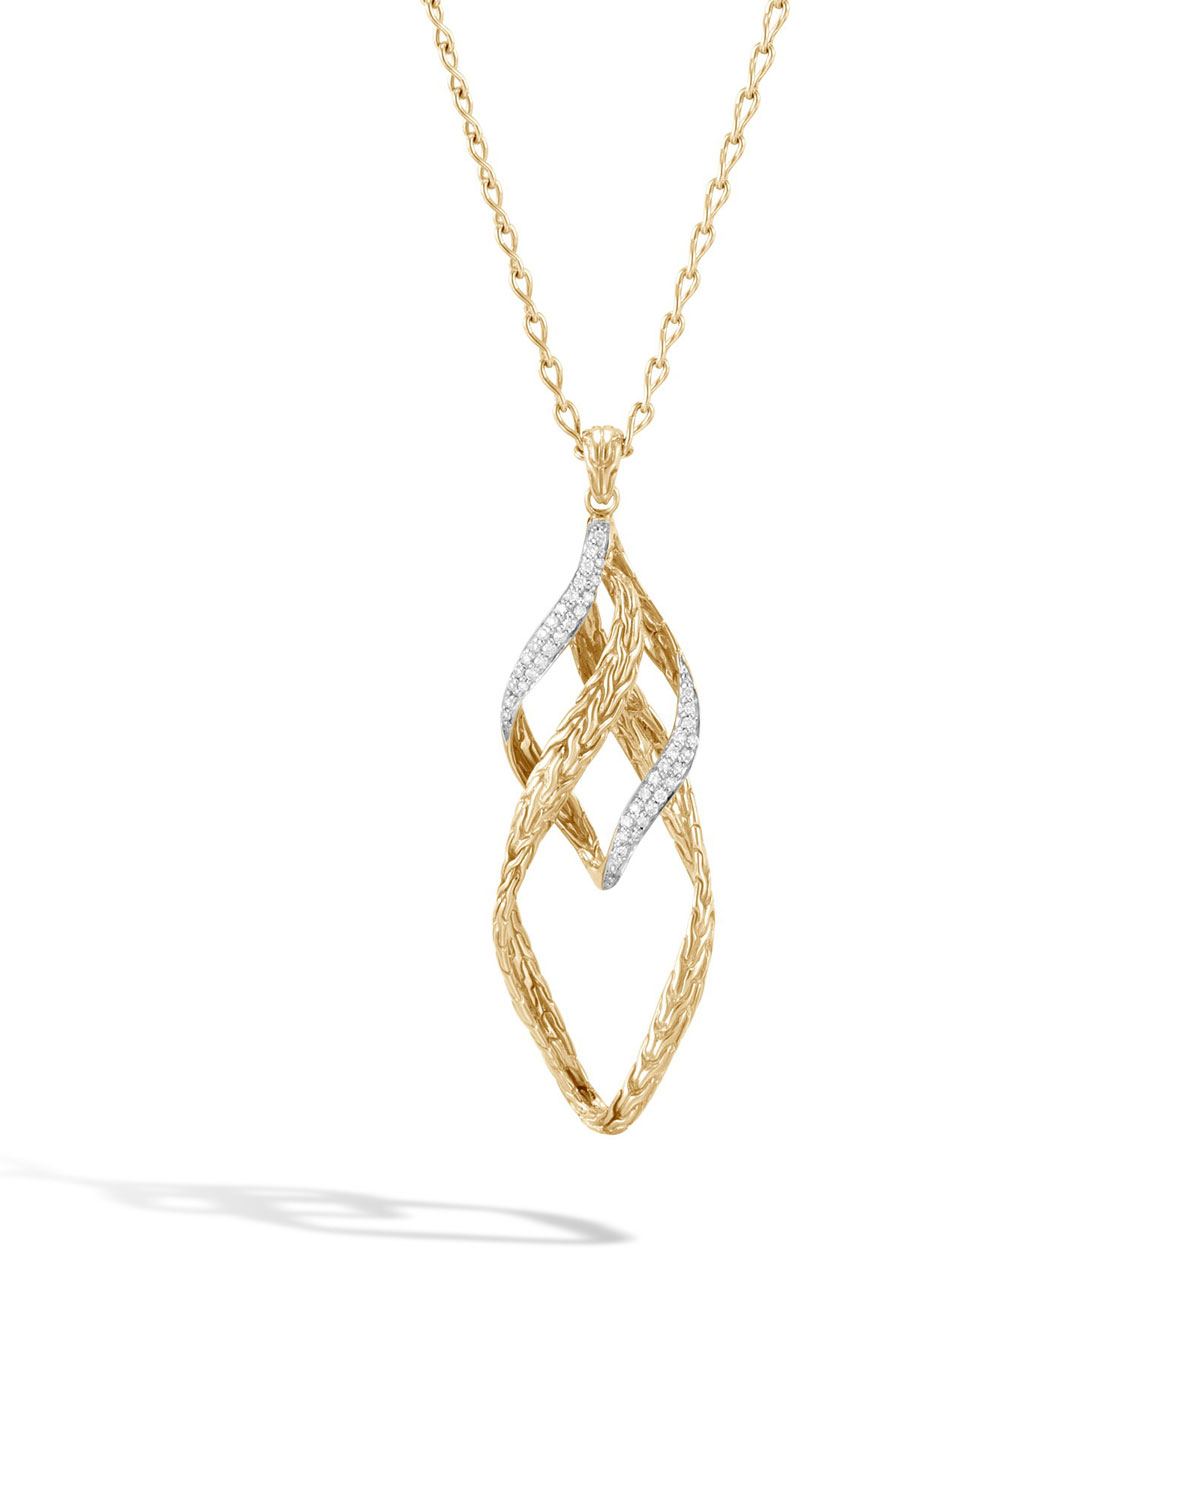 7d089188f38b5 18K Yellow Gold Classic Chain Pave Diamond Twist Link Pendant Necklace, 16  in White/Gold